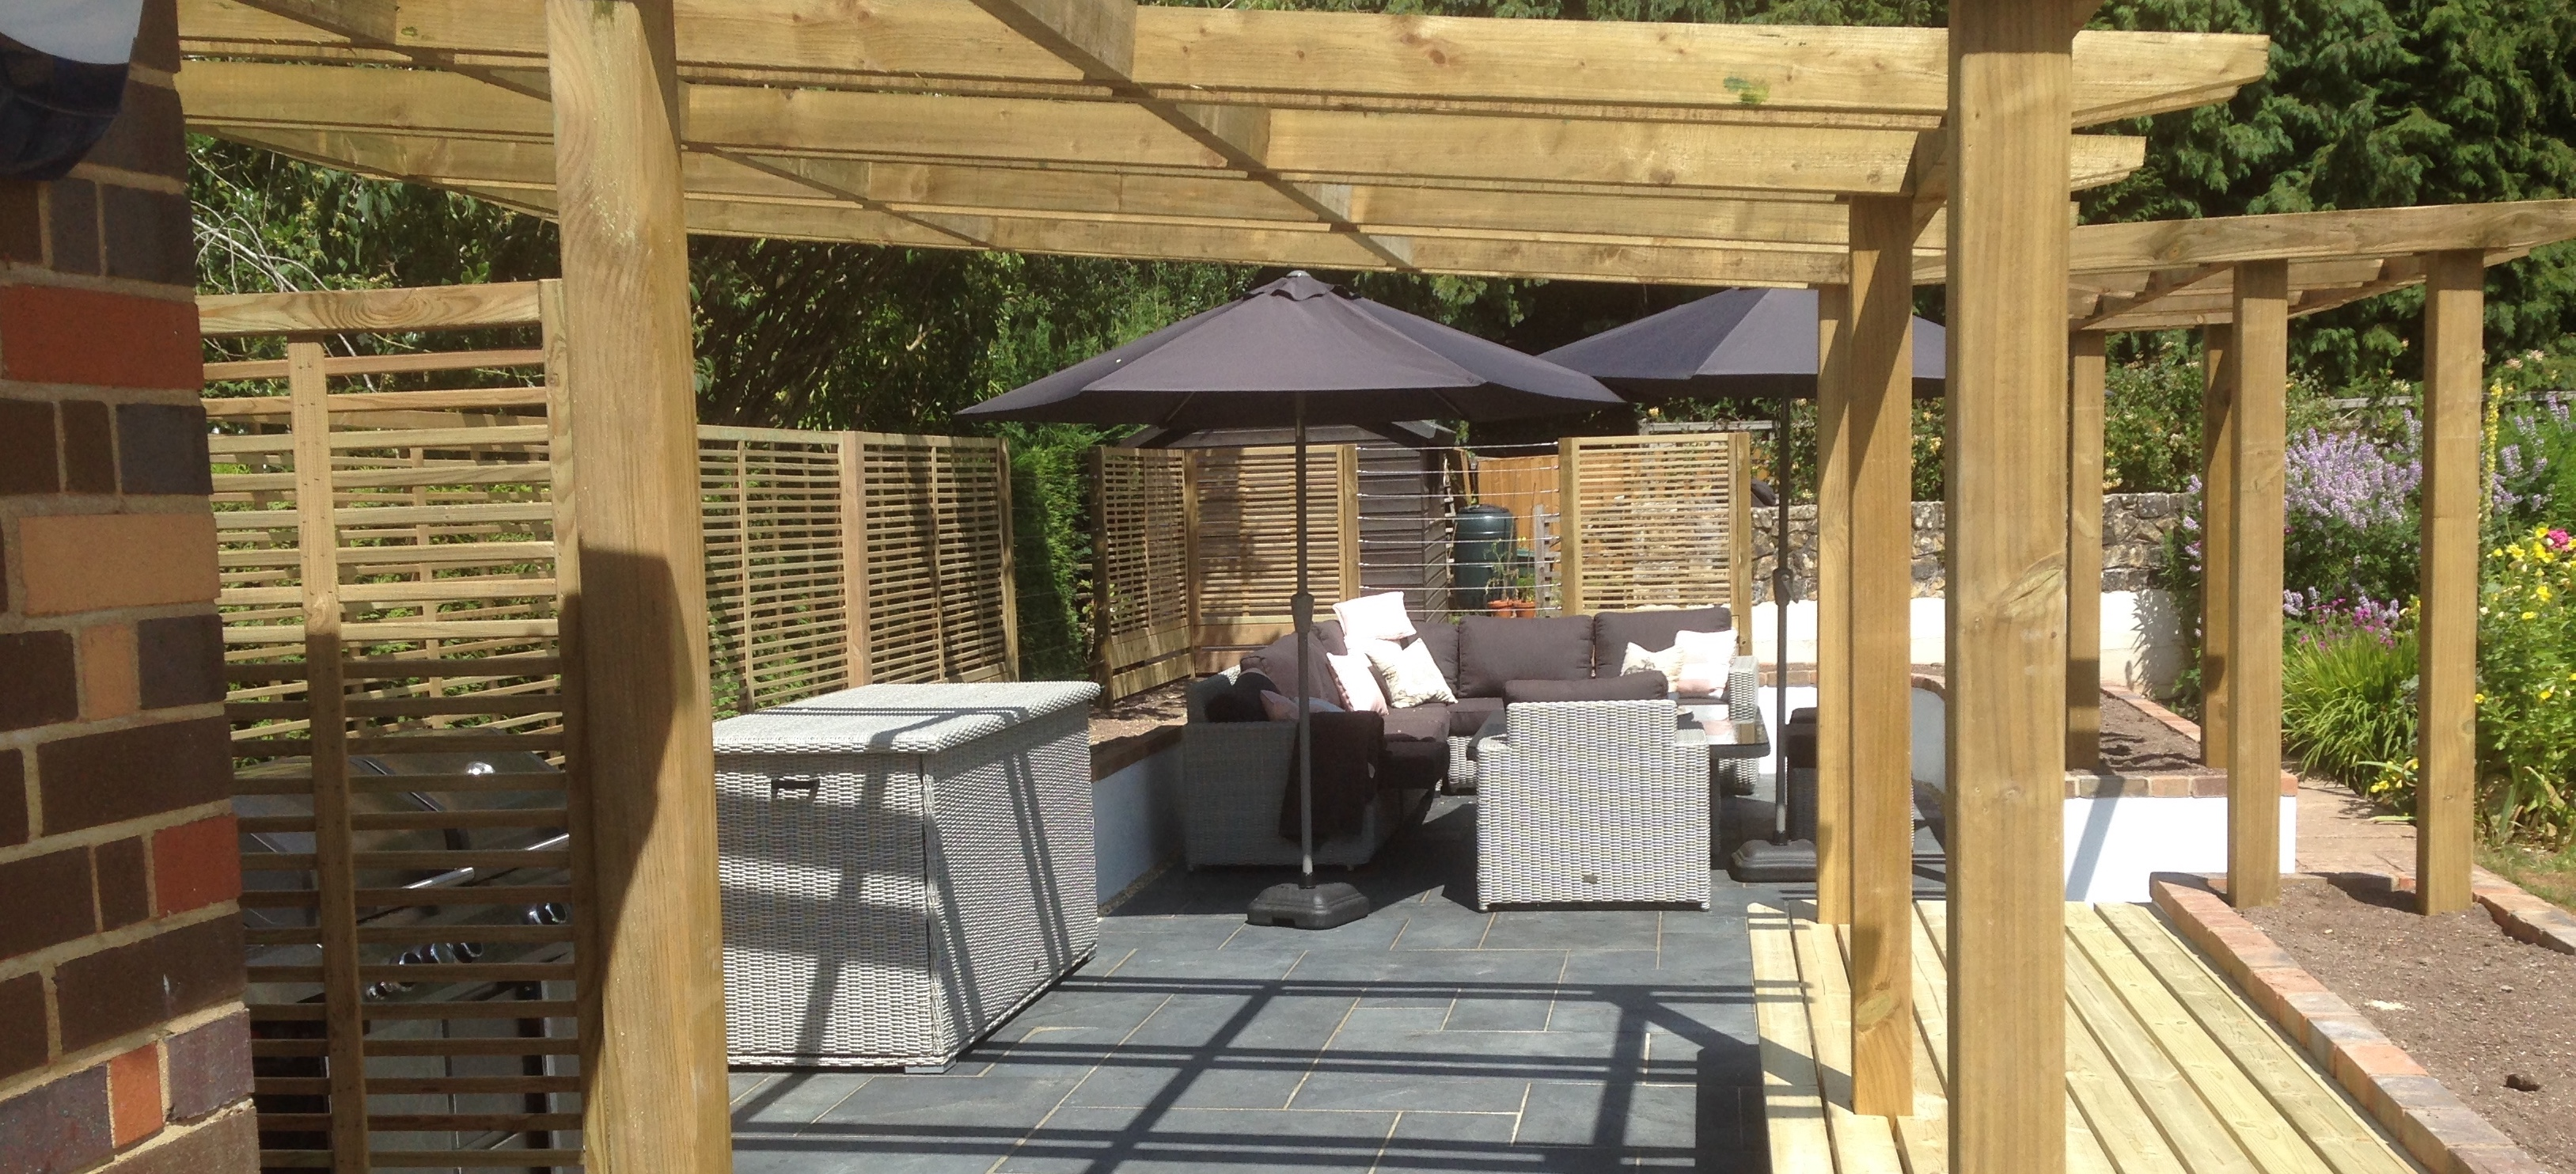 Roots Landscaping - Garden design and Landscaping in Bristol